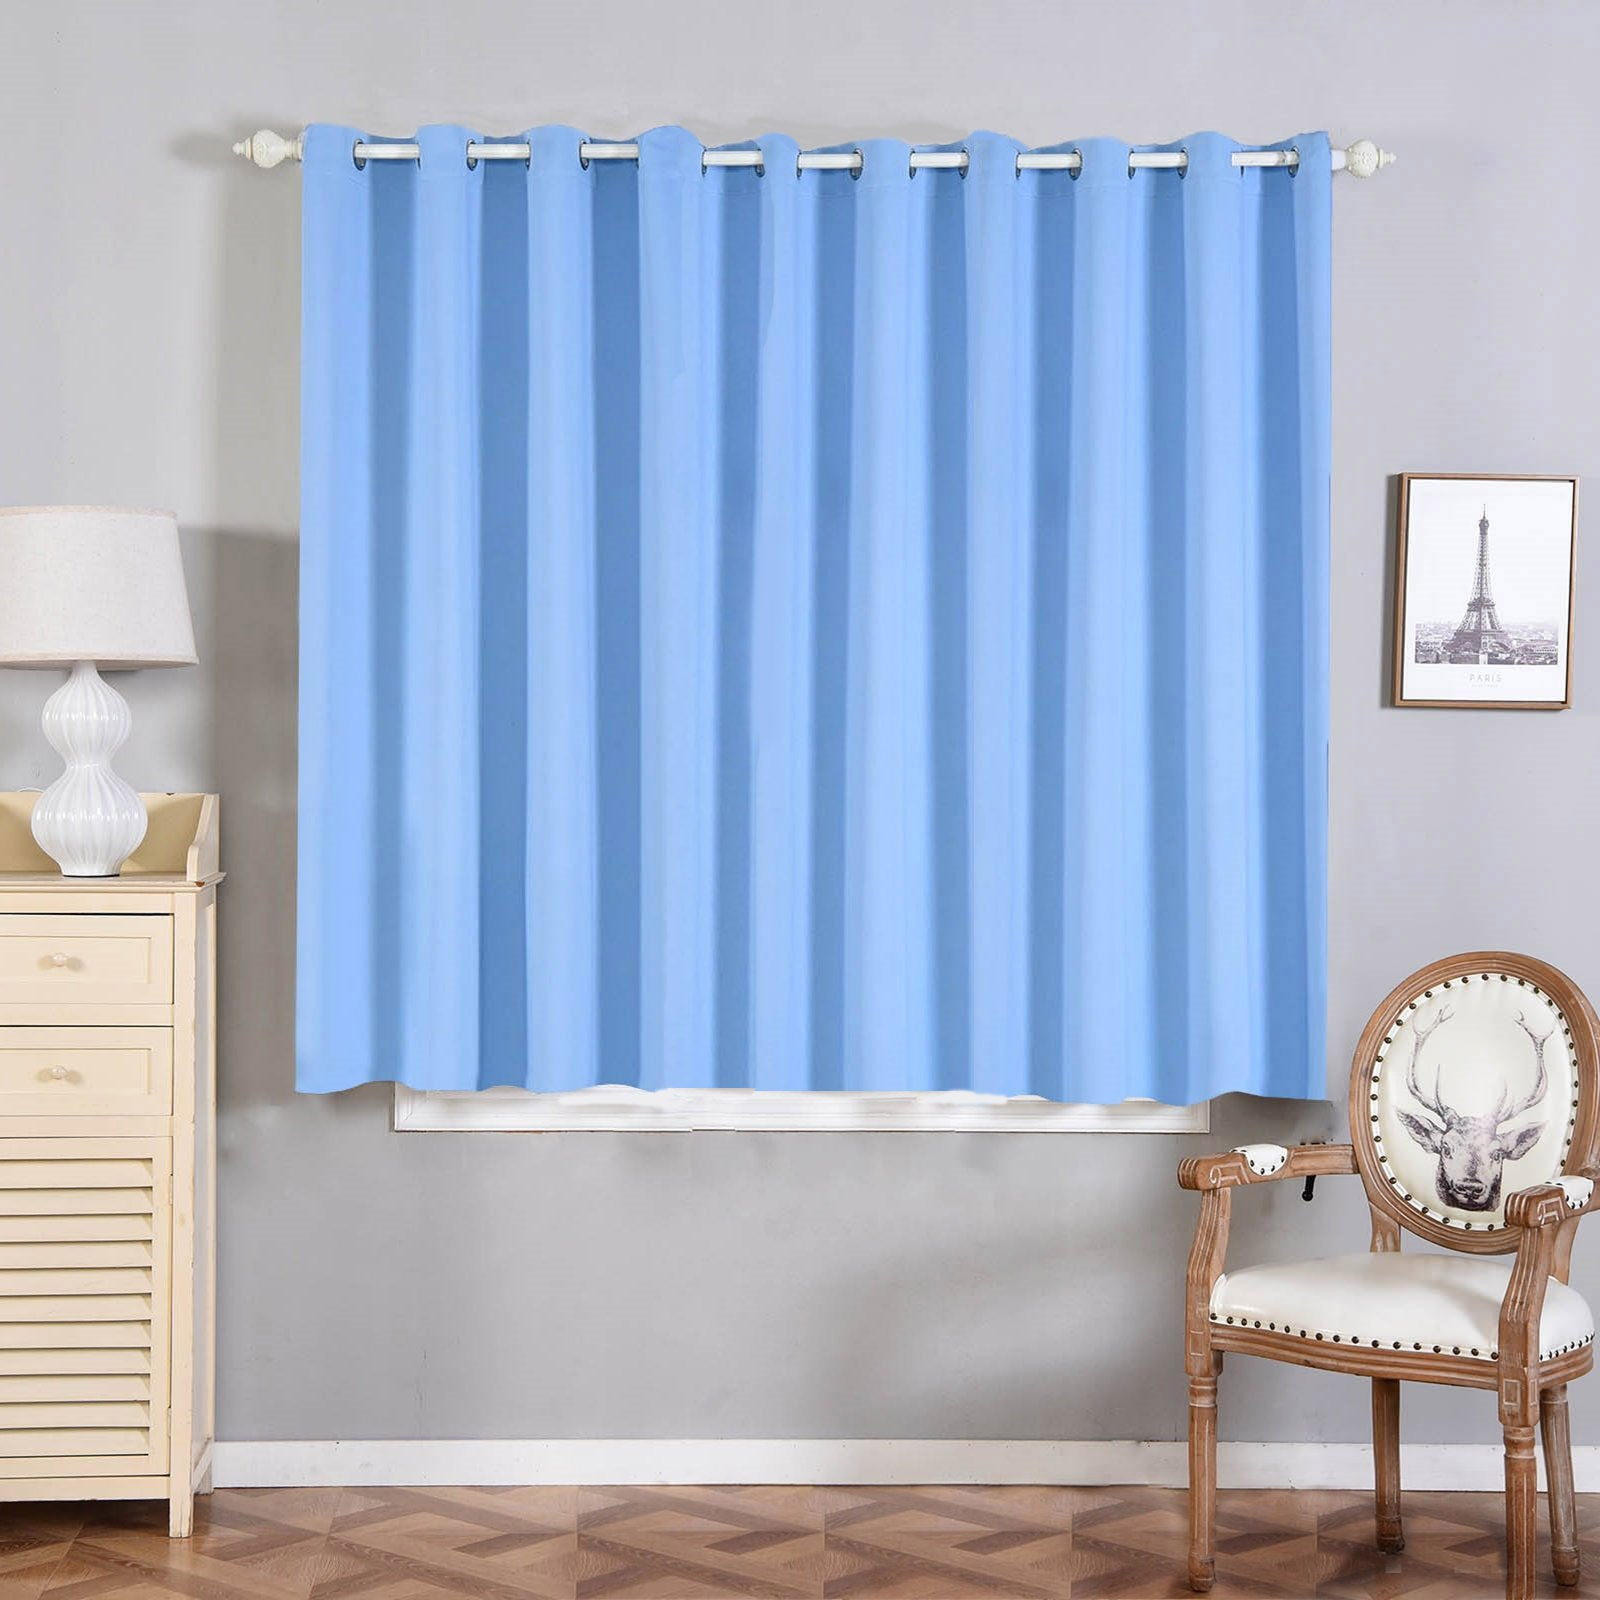 Baby Blue Blackout Curtains 2 Packs 52 X 64 Inch